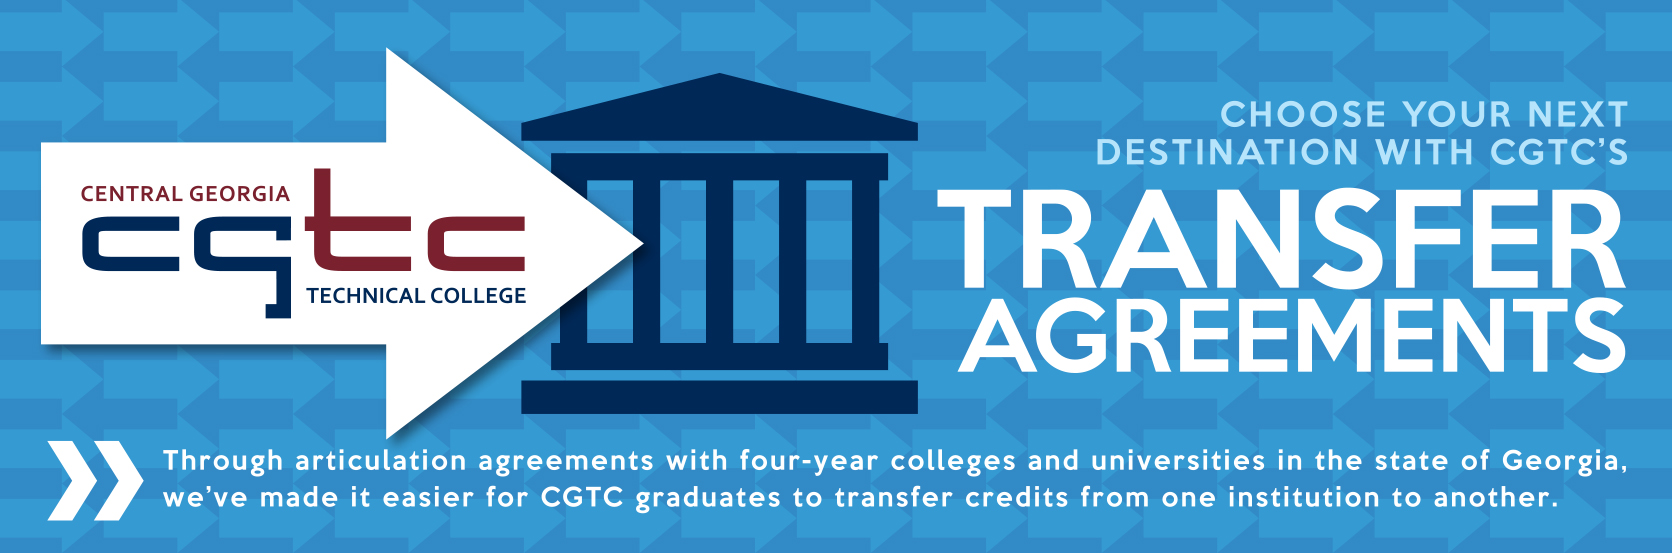 CGTC has transfer agreements with other institutions, you can transfer your CGTC credits!